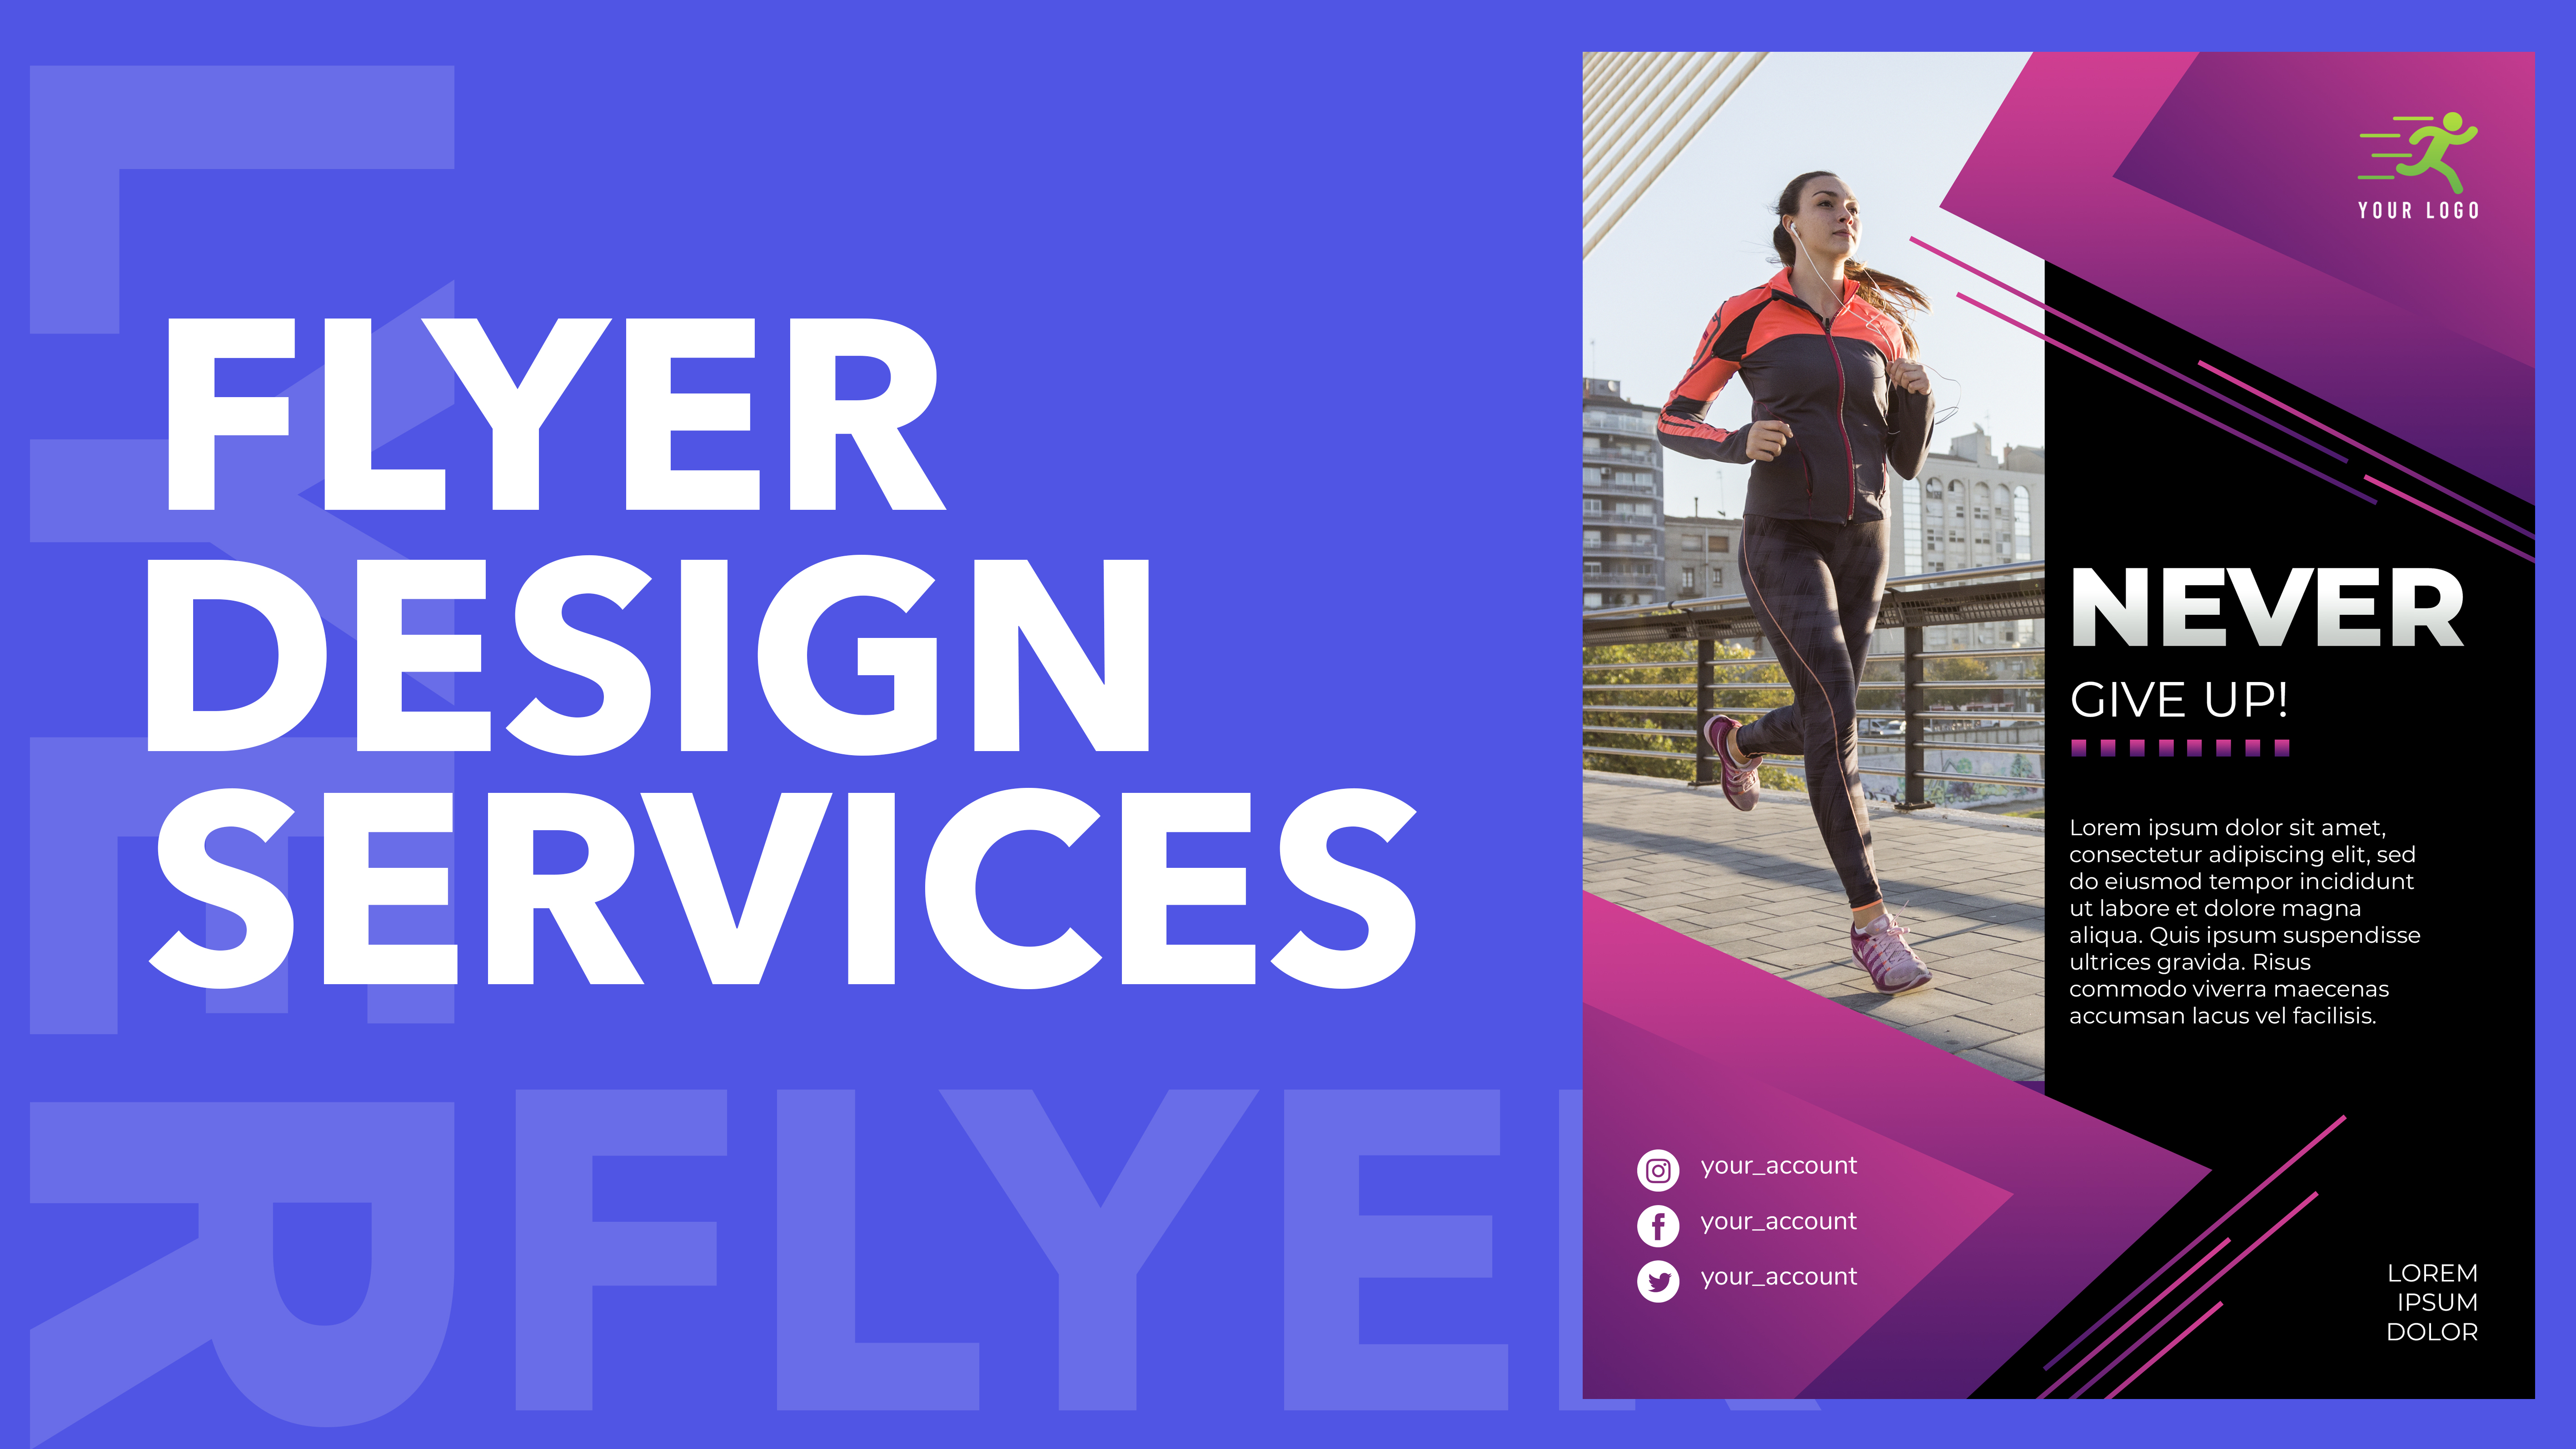 I will design a professional flyer for your business